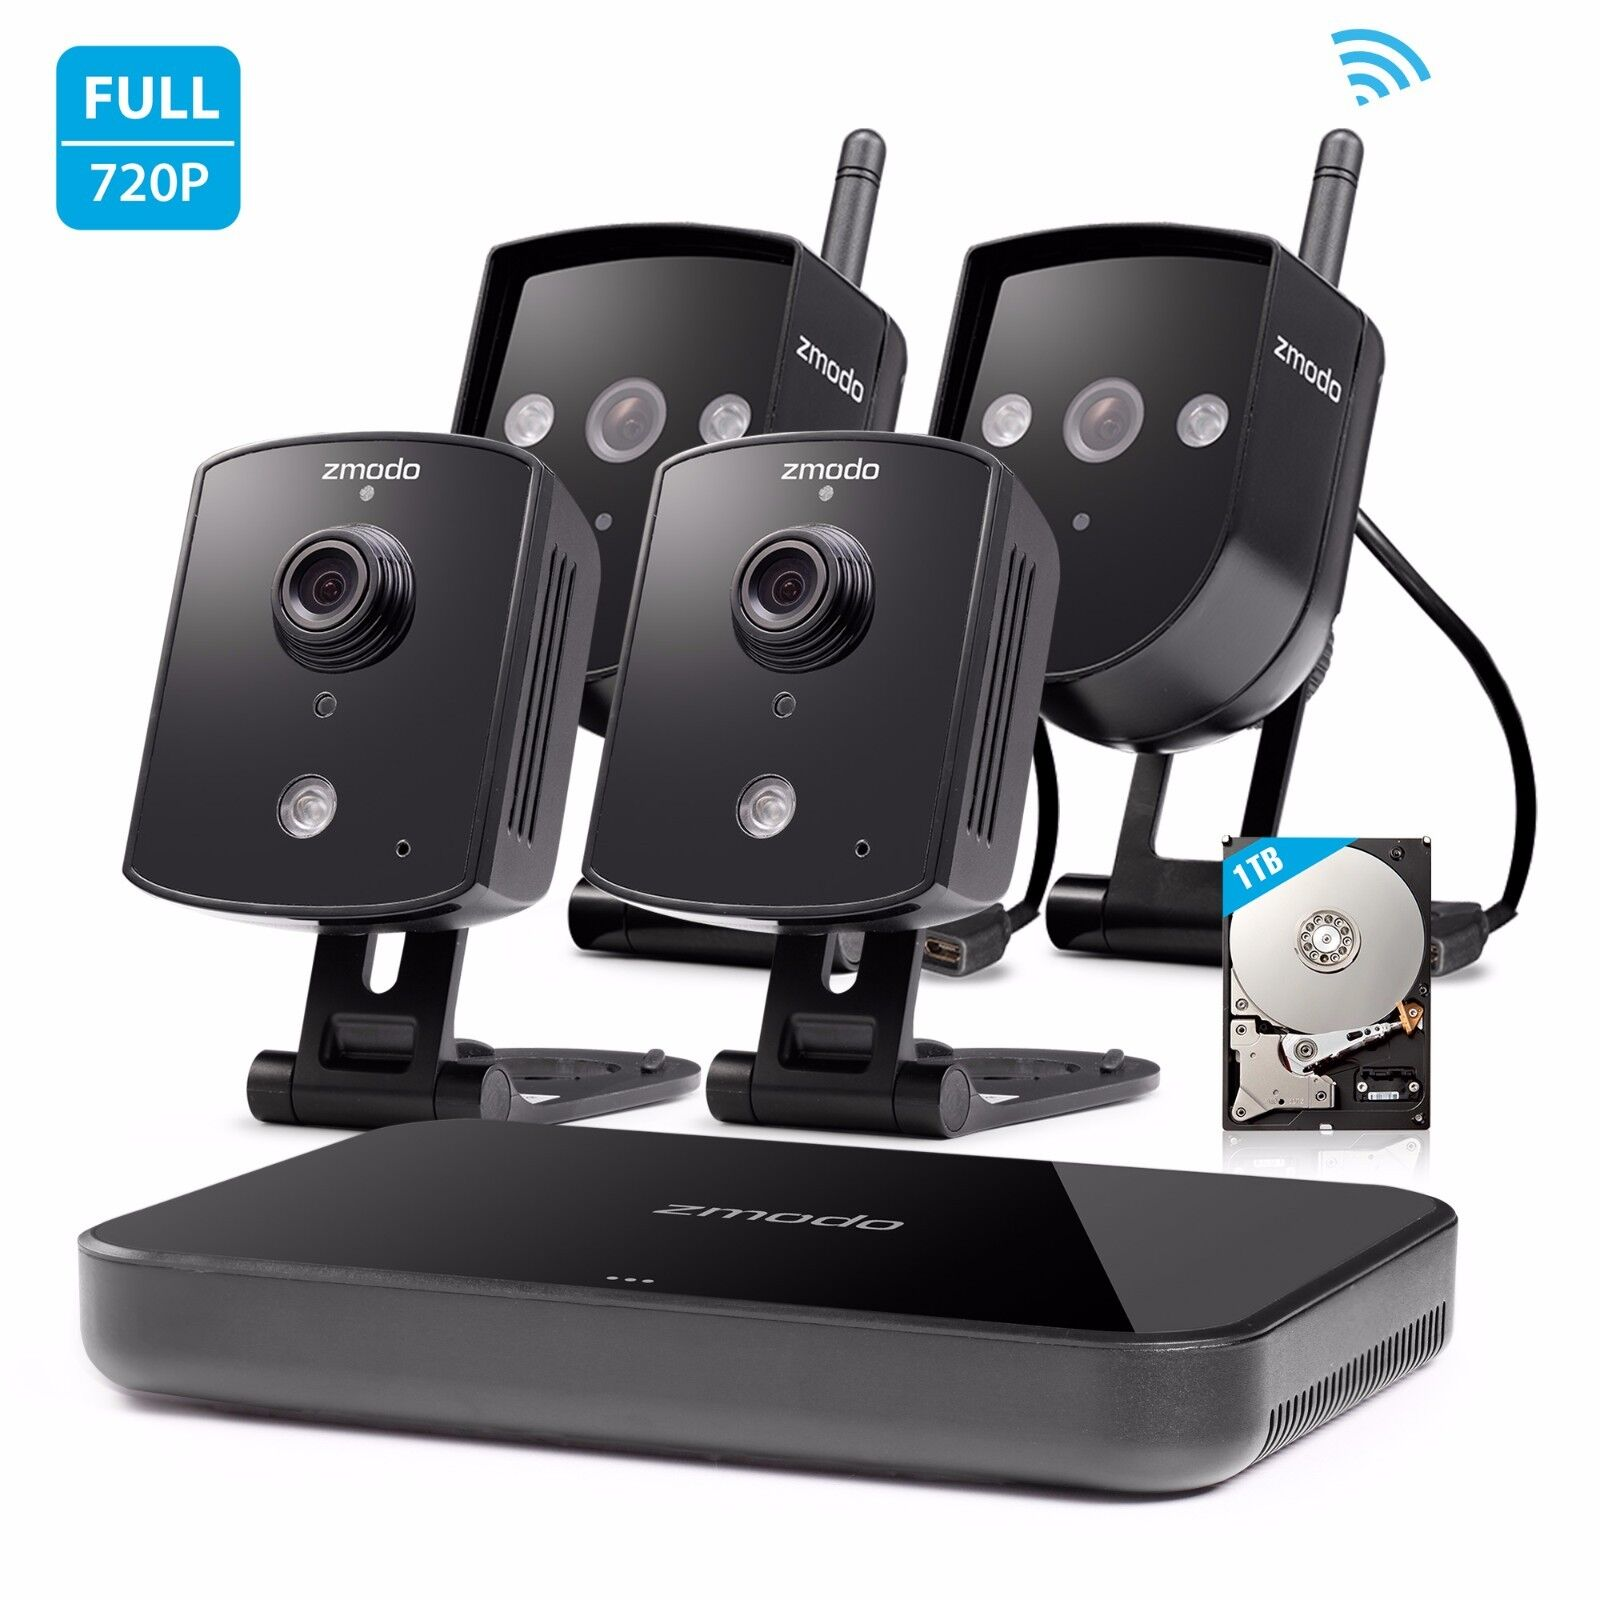 Zmodo 720p Hd Home Security Camera System